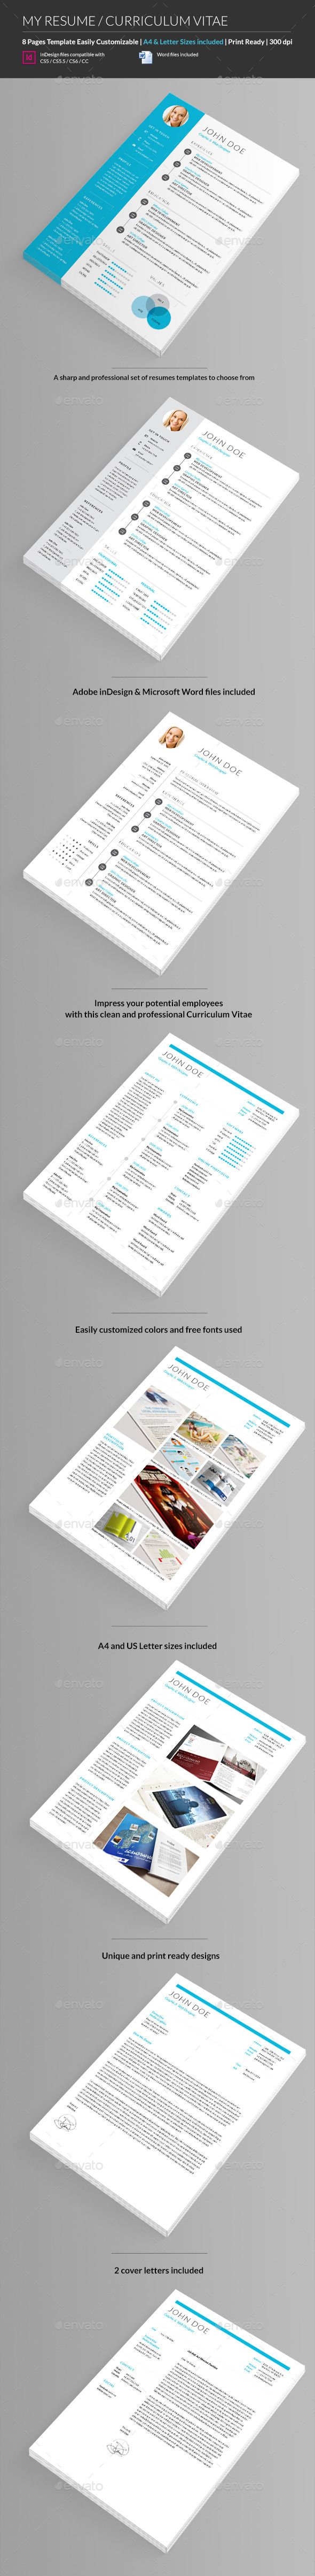 Lovely 1 Page Resume Format For Freshers Tiny 1.5 Inch Circle Template Clean 10 Best Resume Writers 10 Off Coupon Template Old 12 Week Calendar Template Gray17 Worst Things To Say On Your Resume Business Insider 25  Best Ideas About My Resume On Pinterest | Build My Resume, Job ..